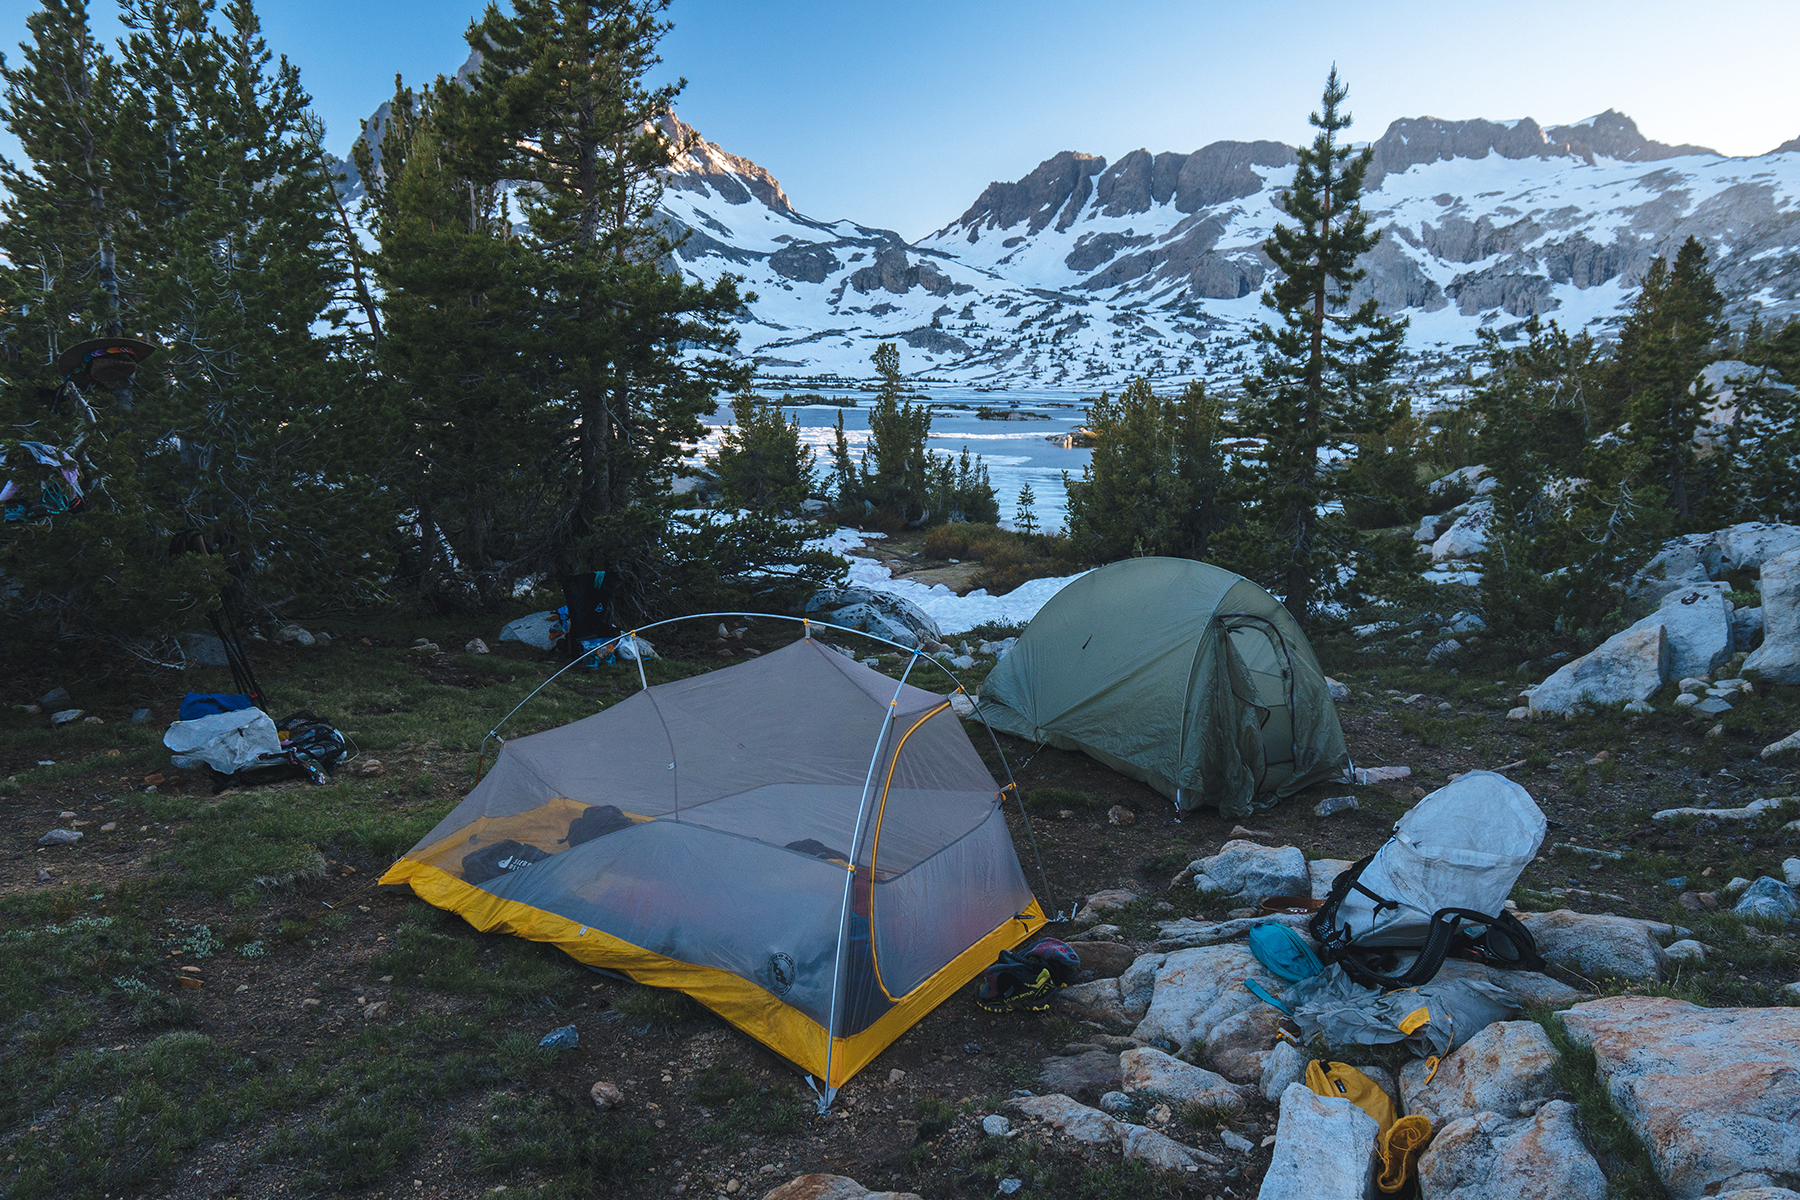 Our little homes (Big Agnes Fly Creek Tents) at Thousand Island Lake